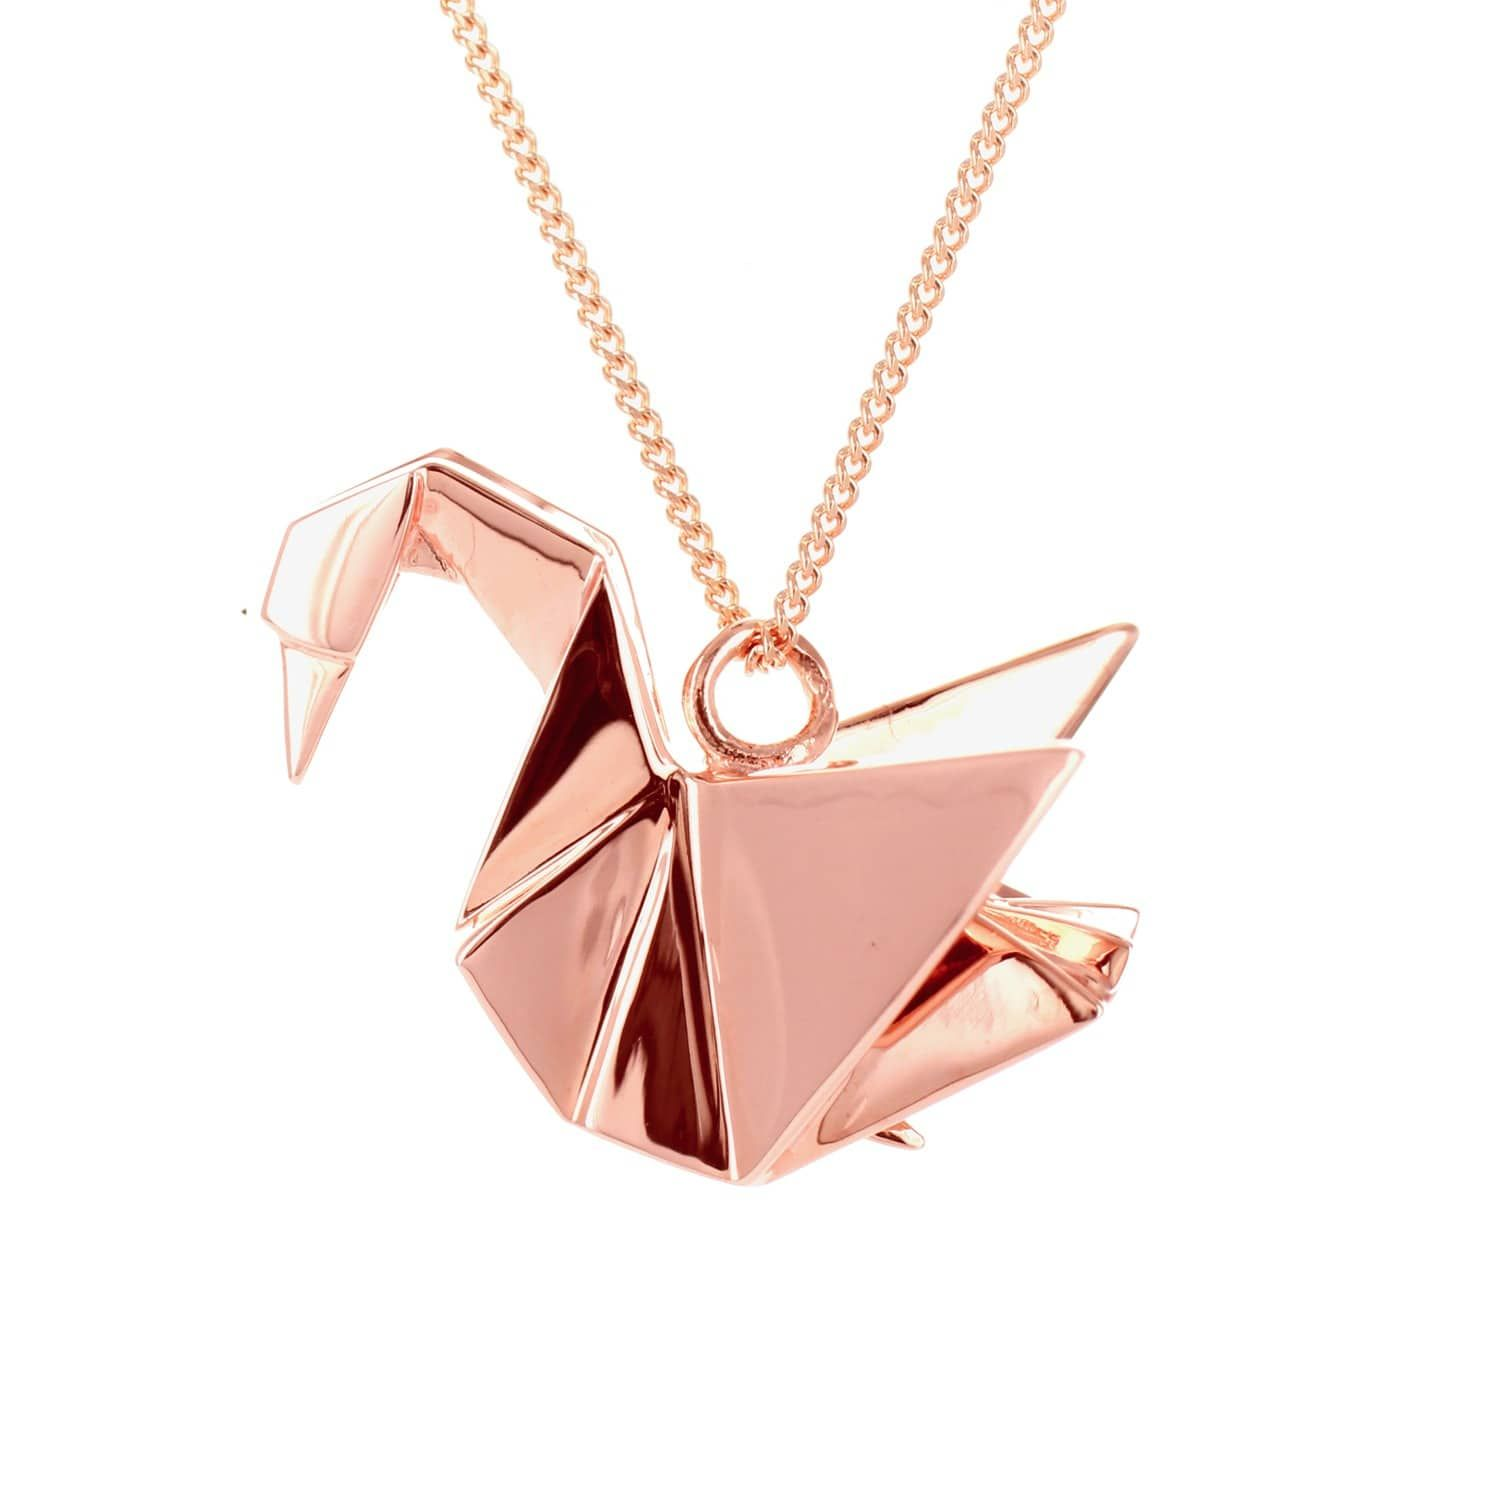 Origami Jewellery Sterling Silver Pink Gold Plated Boat Necklace OhW1cxpAs